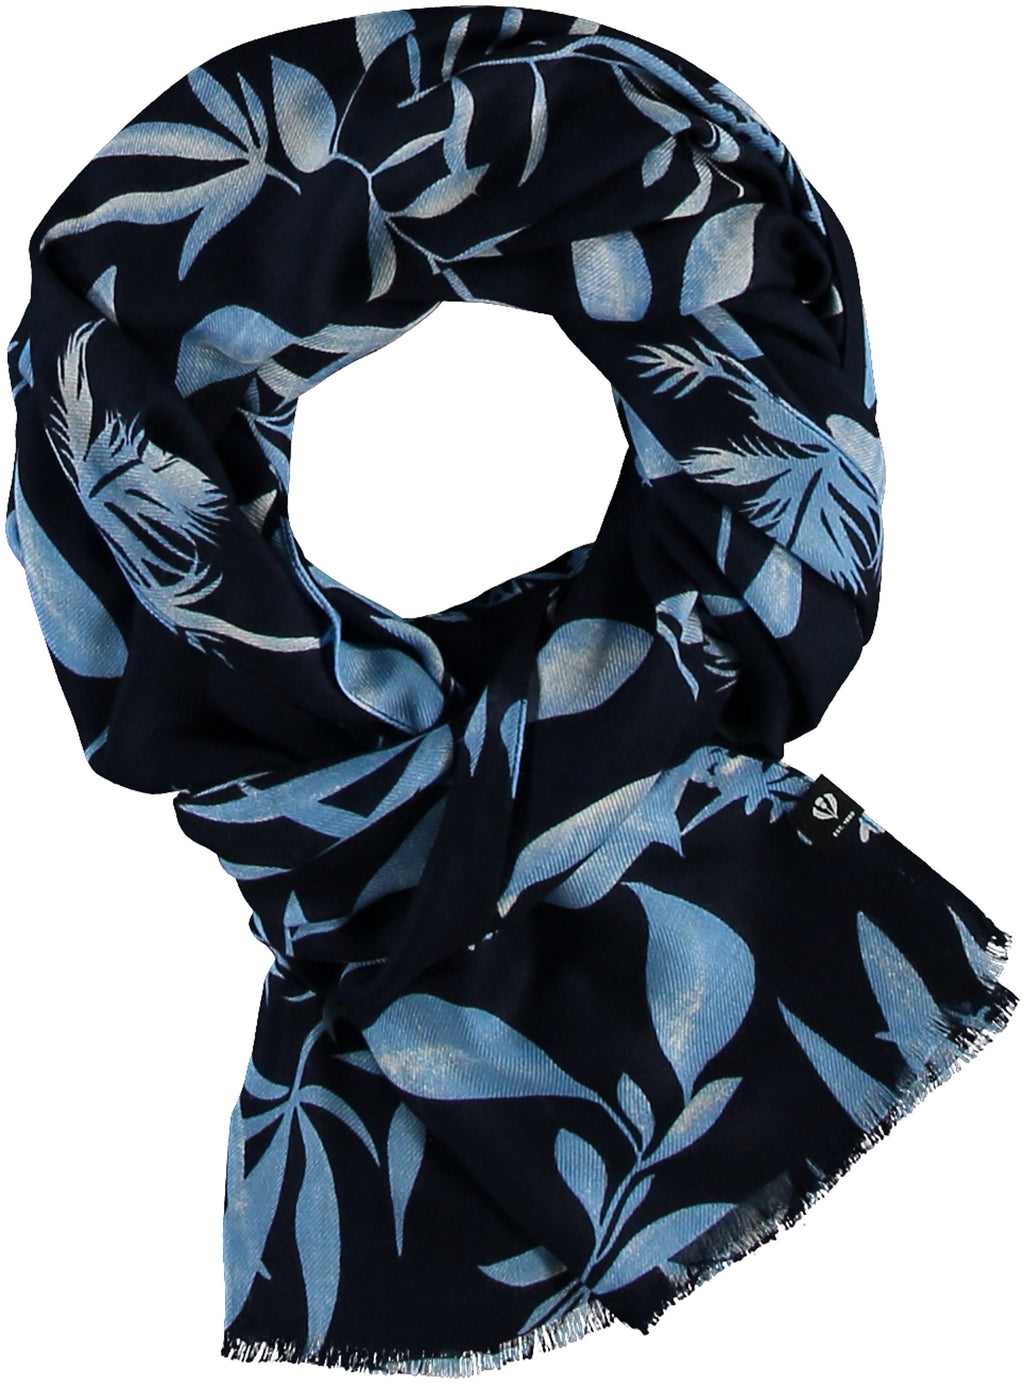 FRAAS TH!NK Leaves Sustainable Viscose Printed Scarf